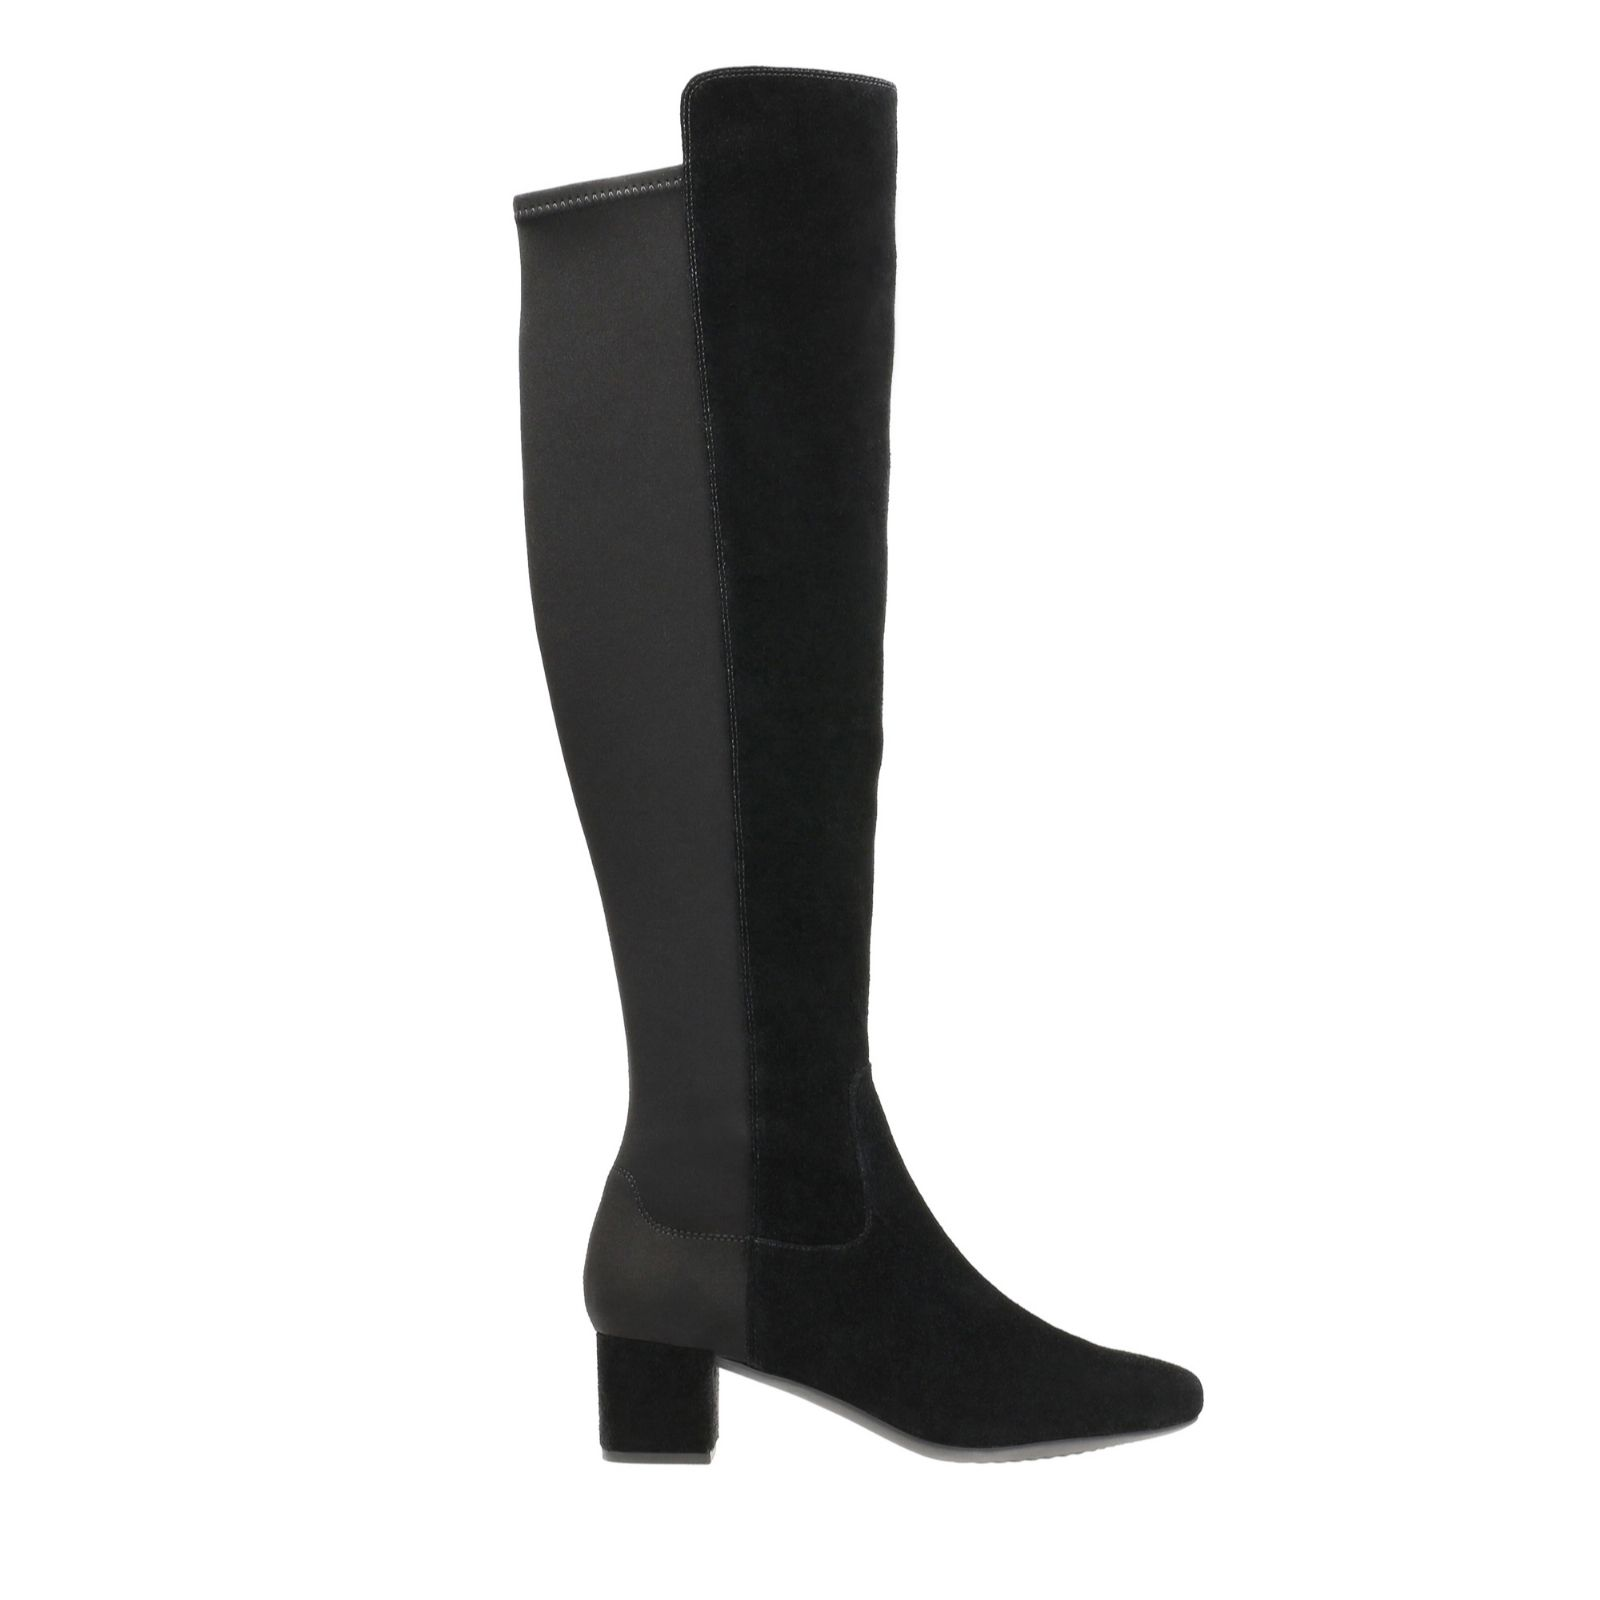 4a0a84e3372 Clarks Tealia Over the Knee Boot with Block Heel - QVC UK